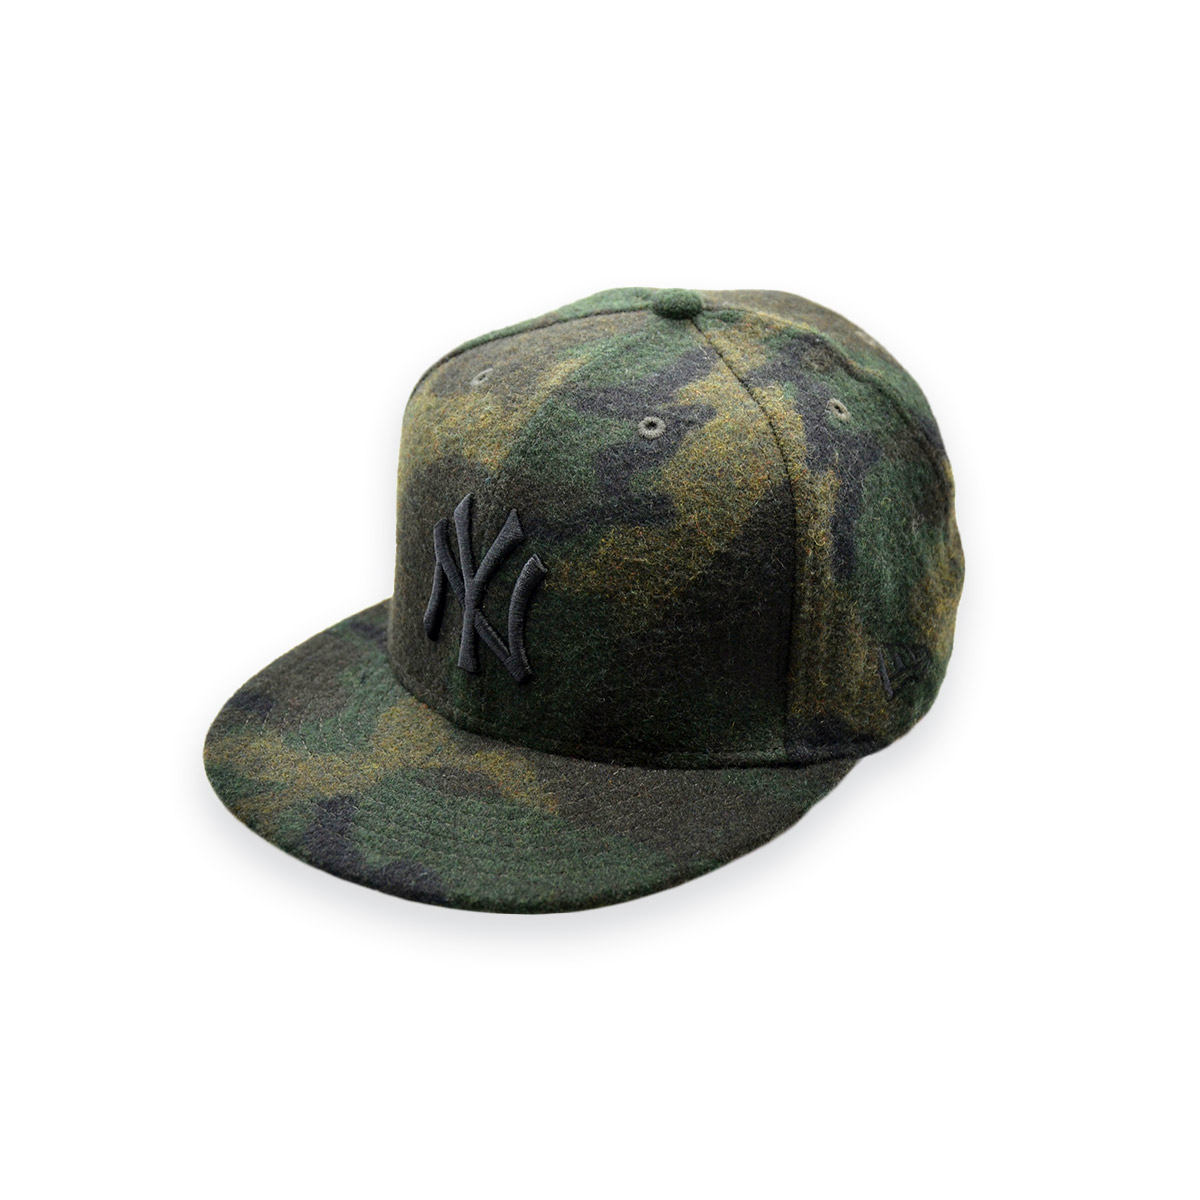 NEW ERA JAPAN NEW YORK YANKEES CAMO FITTED 59FIFTY CAP 7-1 2 59.6cm ... 59767a30606b